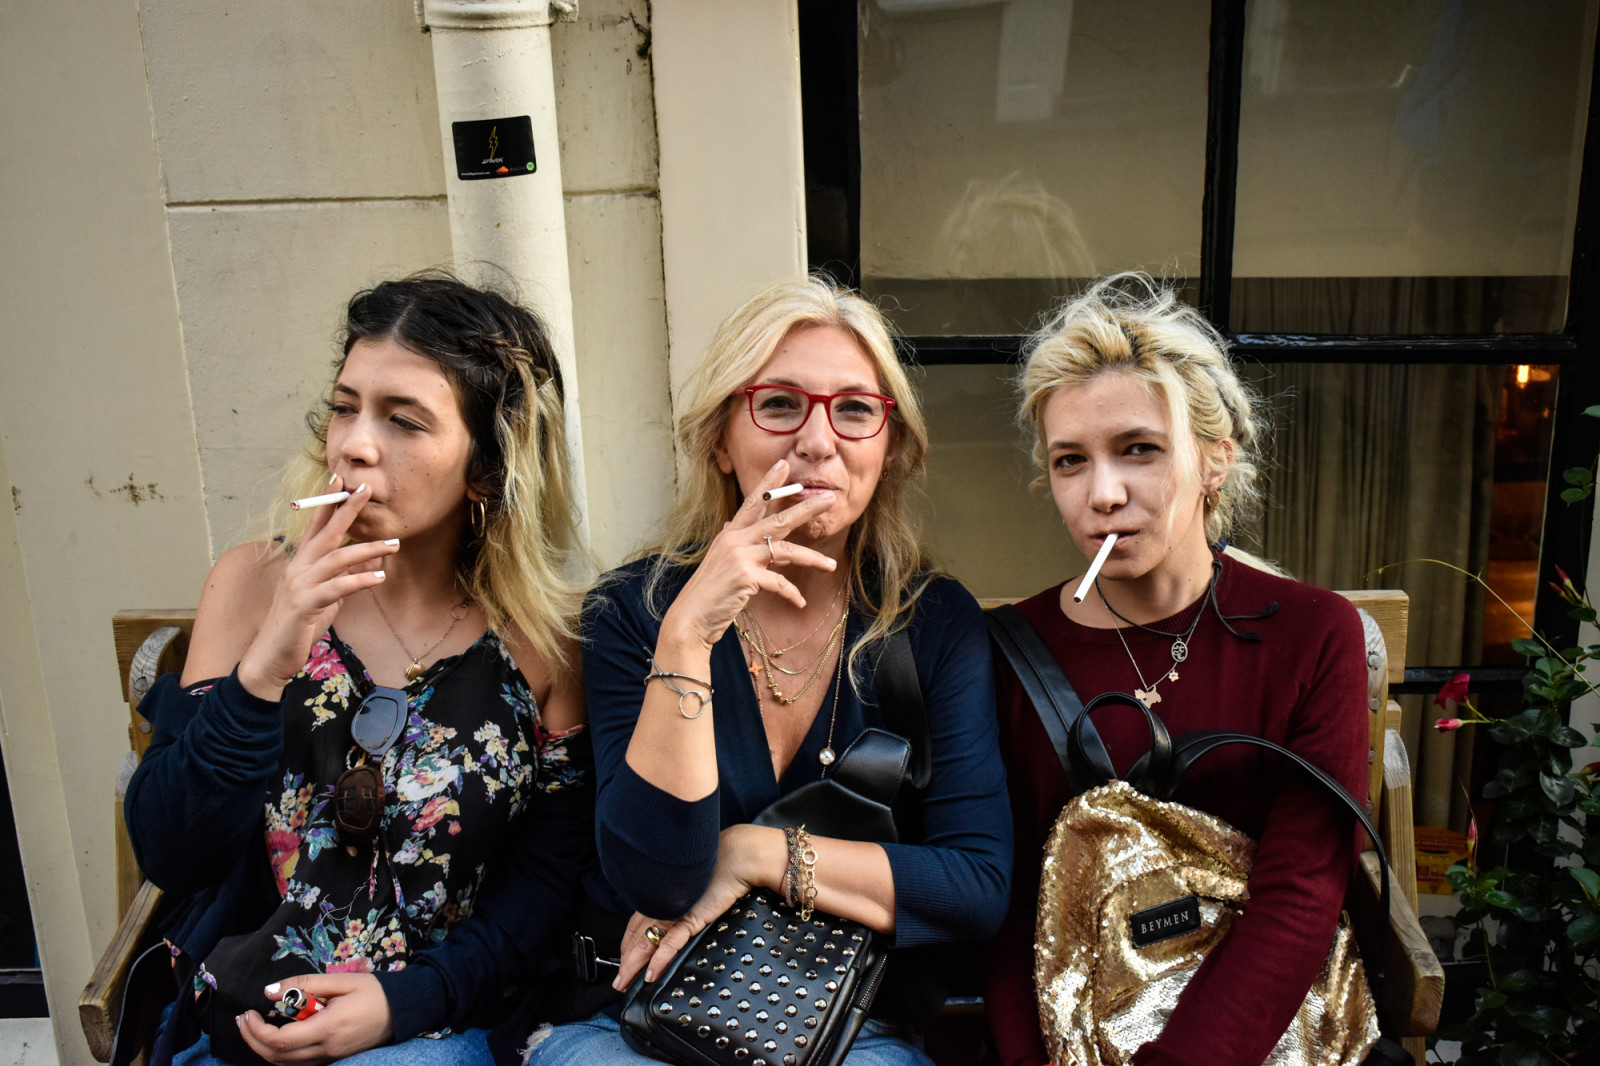 Three women smoking cigarettes in Amsterdam